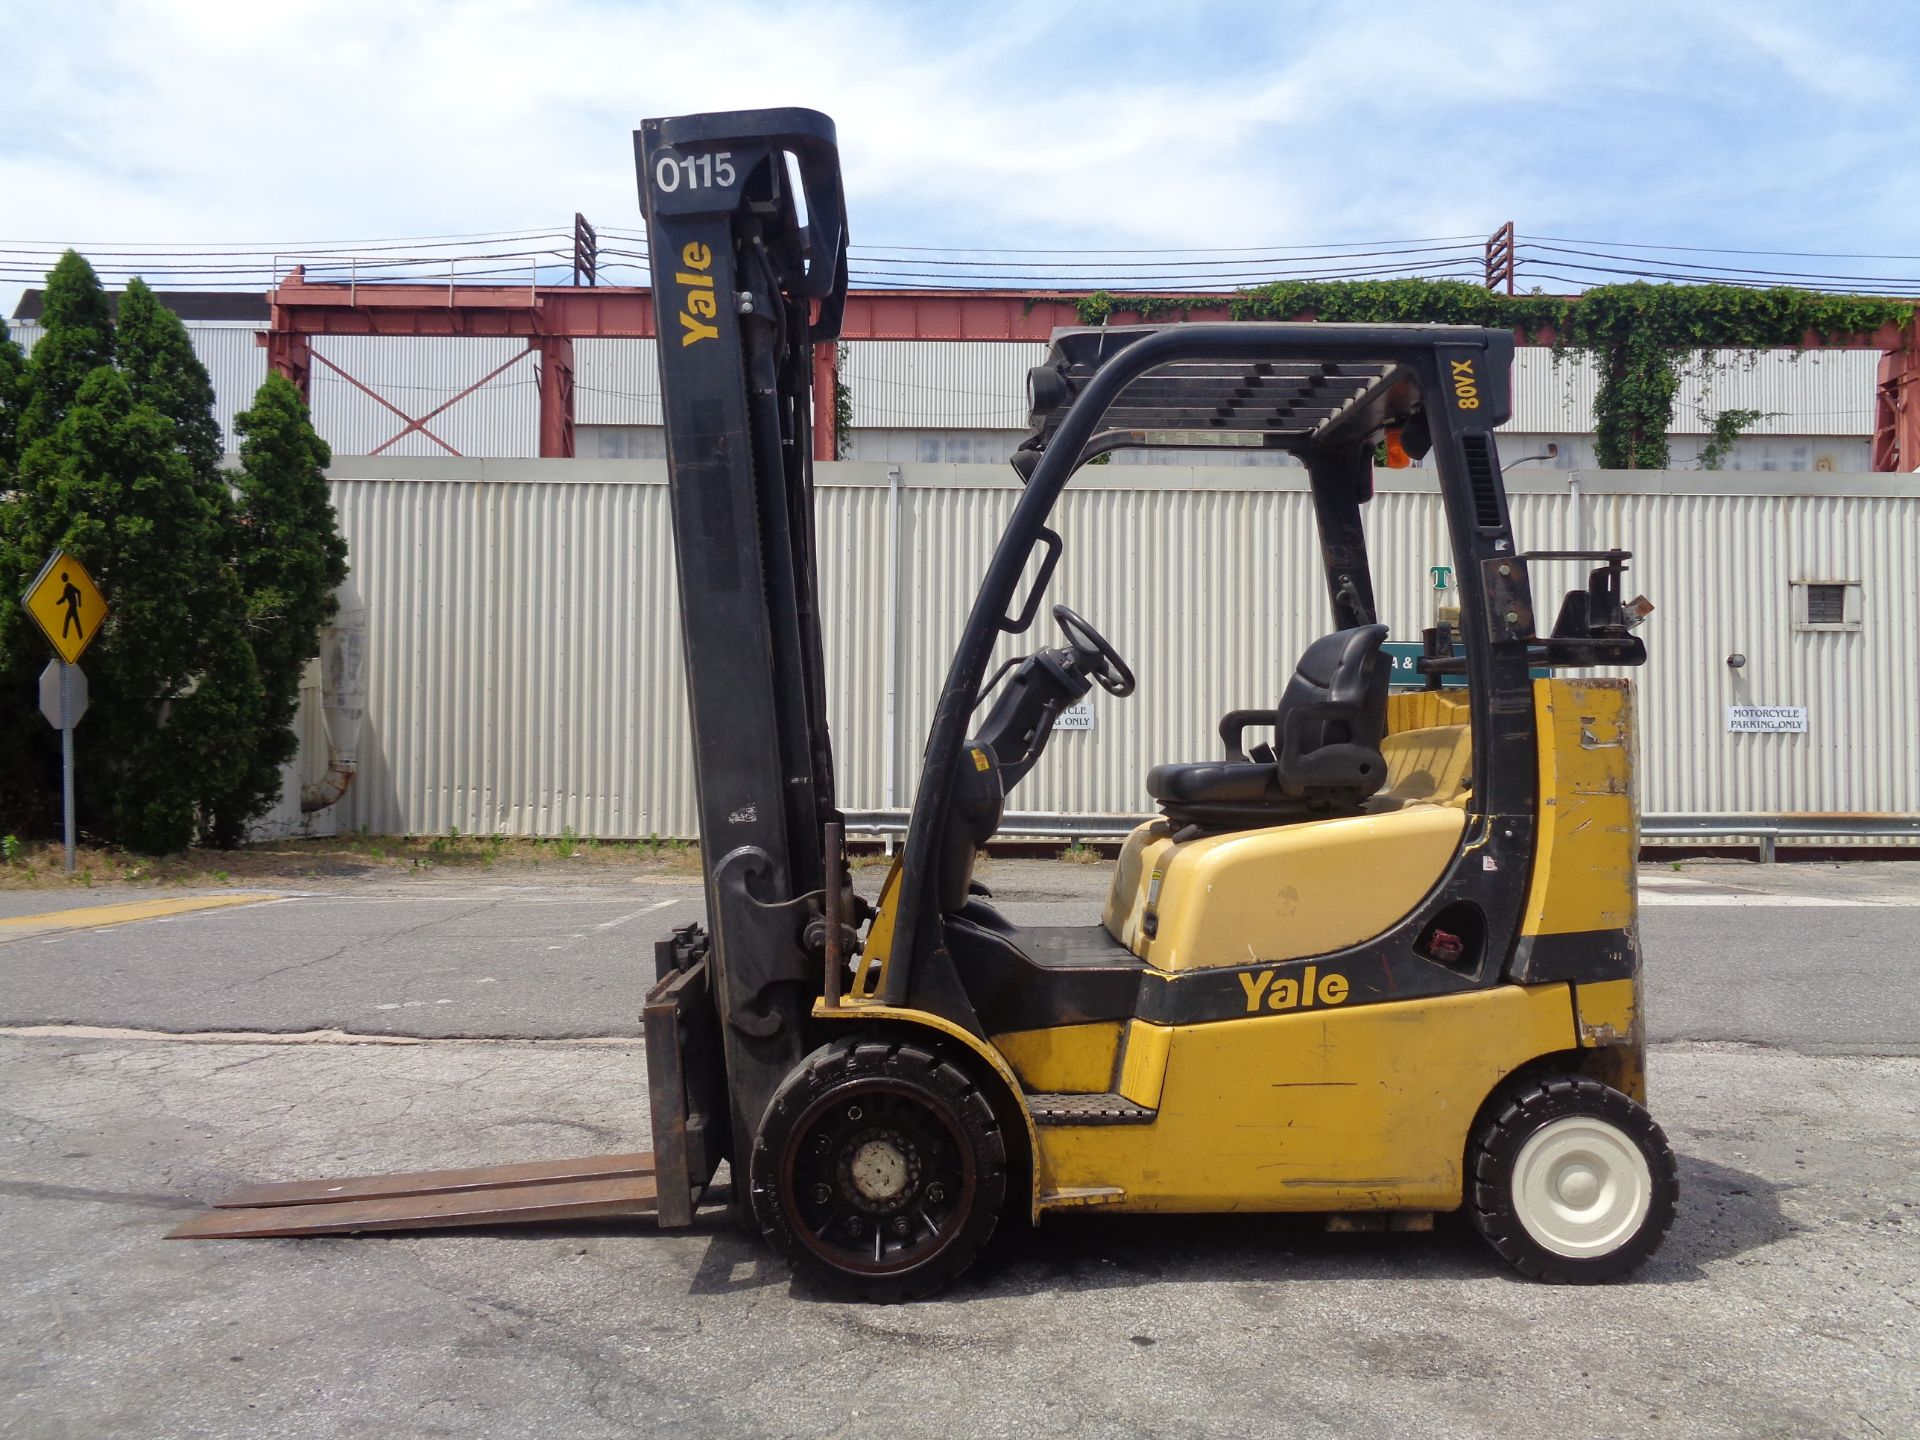 Yale GC080VXNGSE107.6 8,000lb Forklift - Image 7 of 18